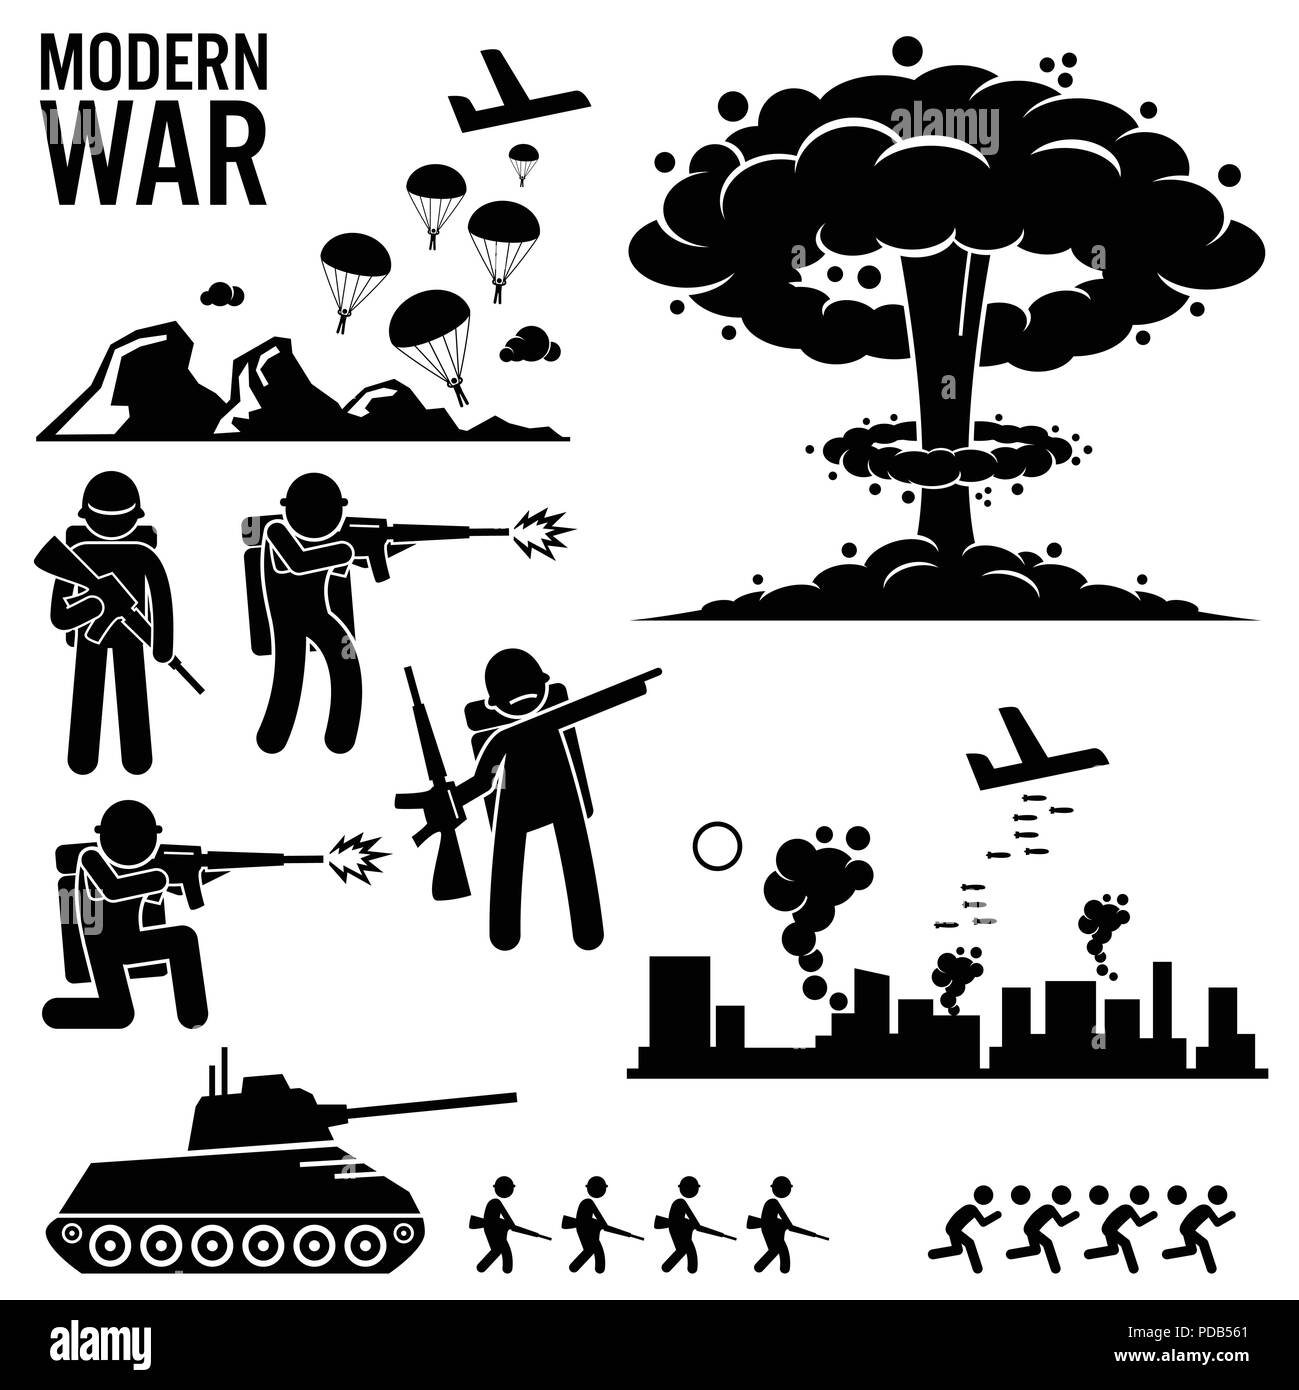 War Modern Warfare Nuclear Bomb Soldier Tank Attack Stick Figure Pictogram Icons - Stock Image